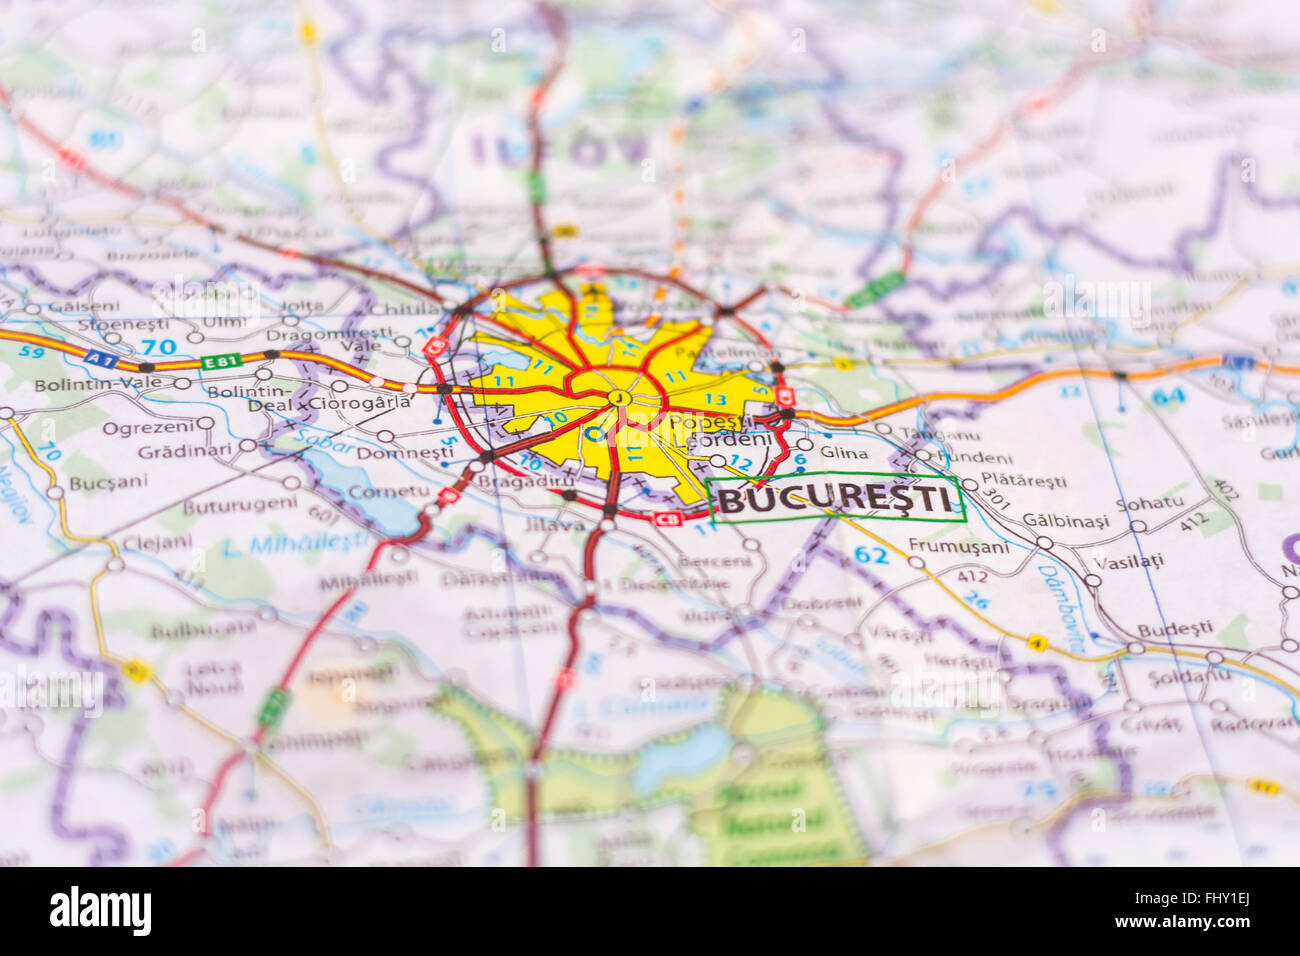 Close up of Bucharest on a map - Stock Image